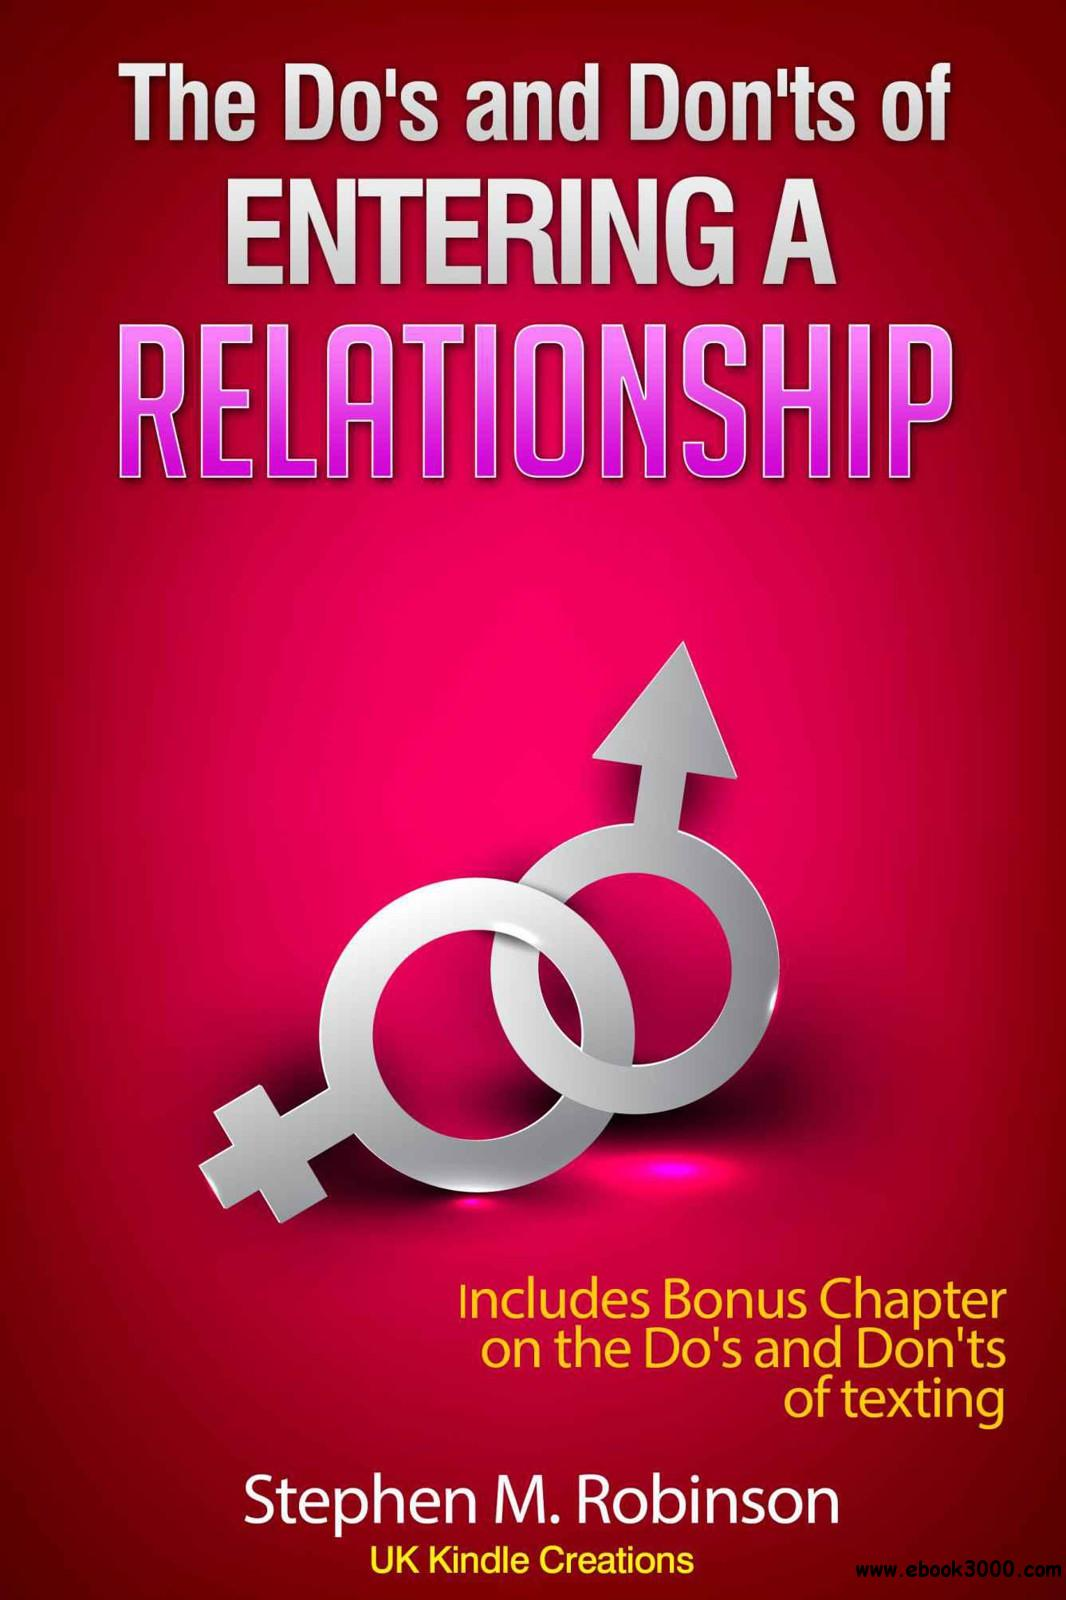 The Do's and Don'ts of Entering a Relationship free download